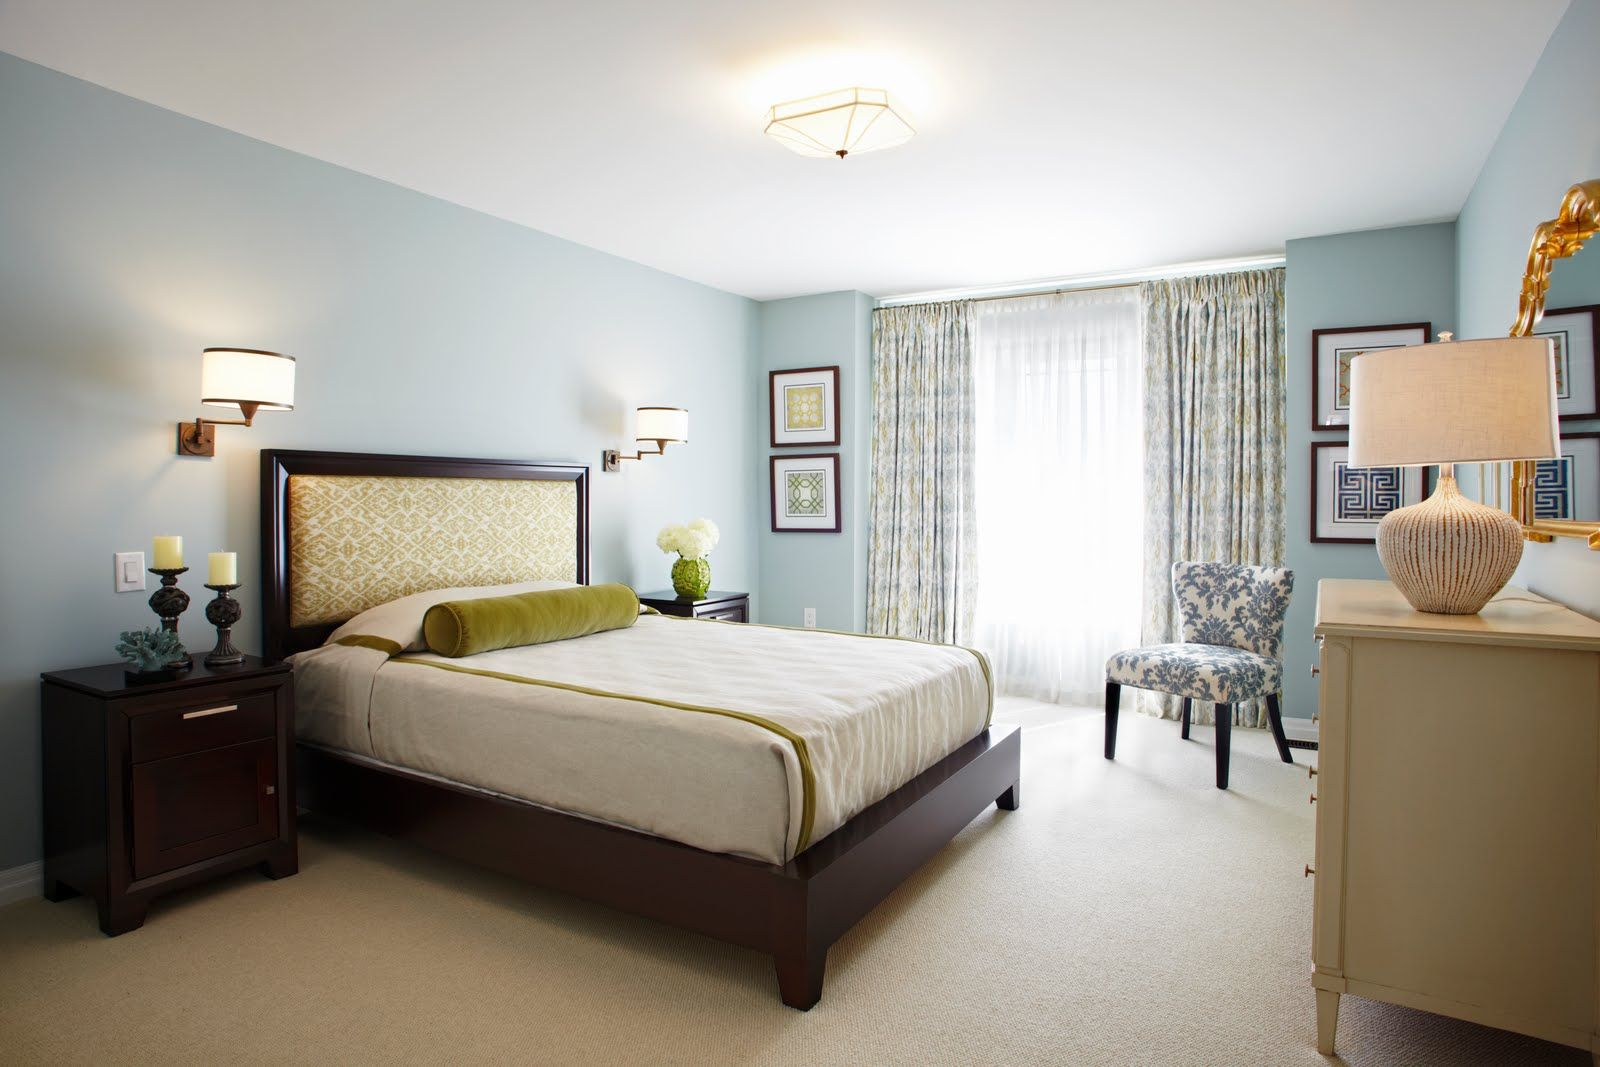 Shipyards Model Home Guest Bedroom Idea Picture Listed In